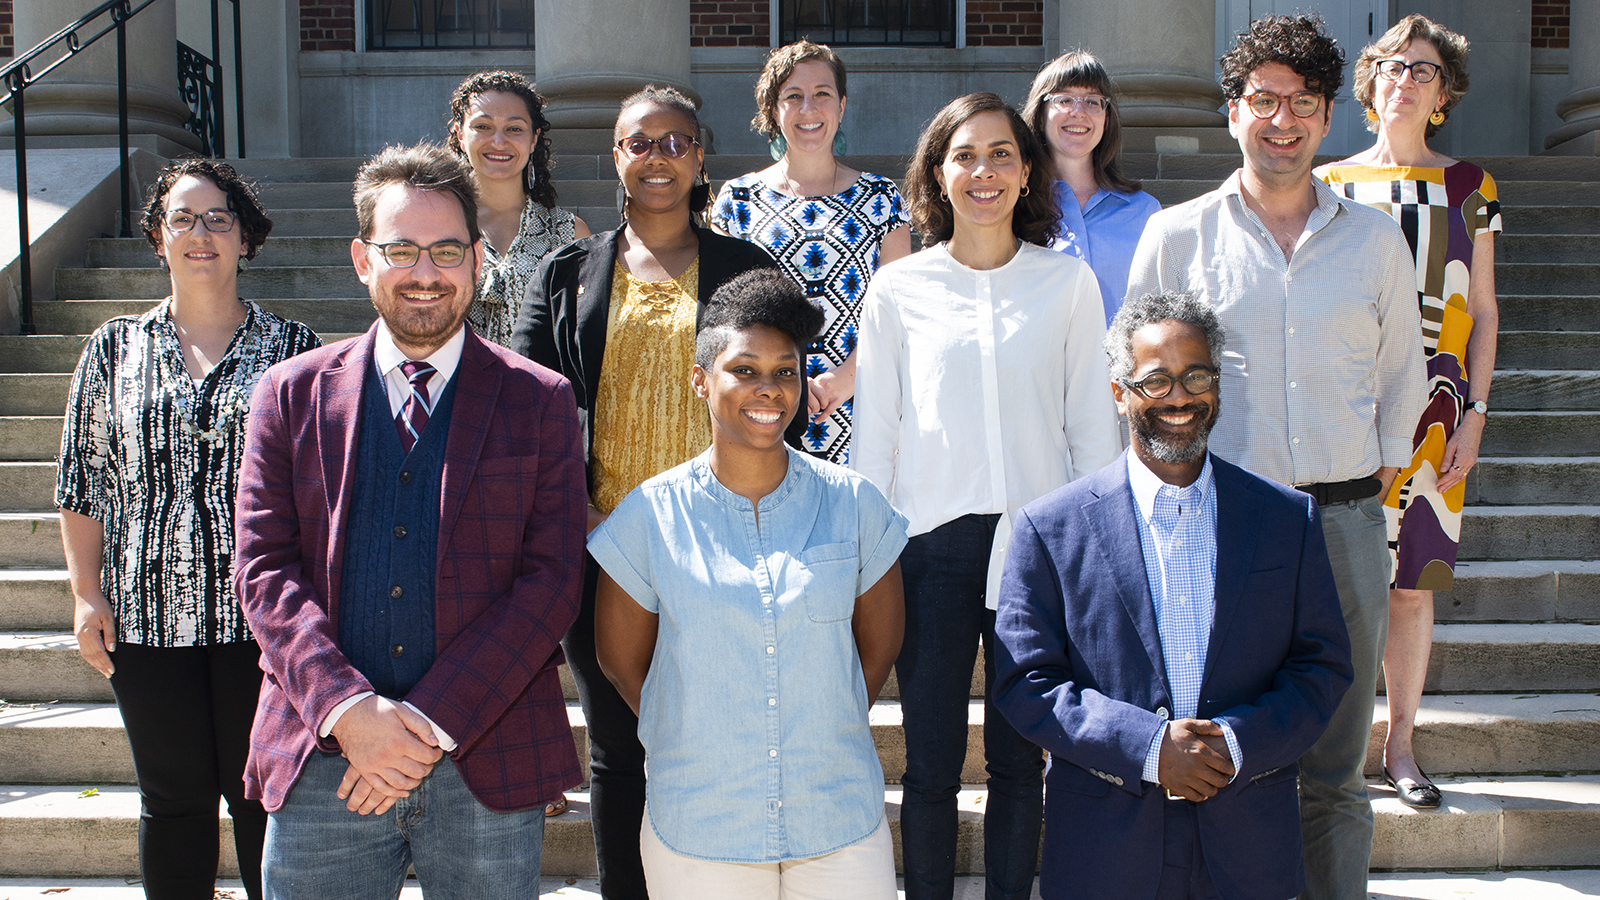 Group shot of new faculty 2019-20.